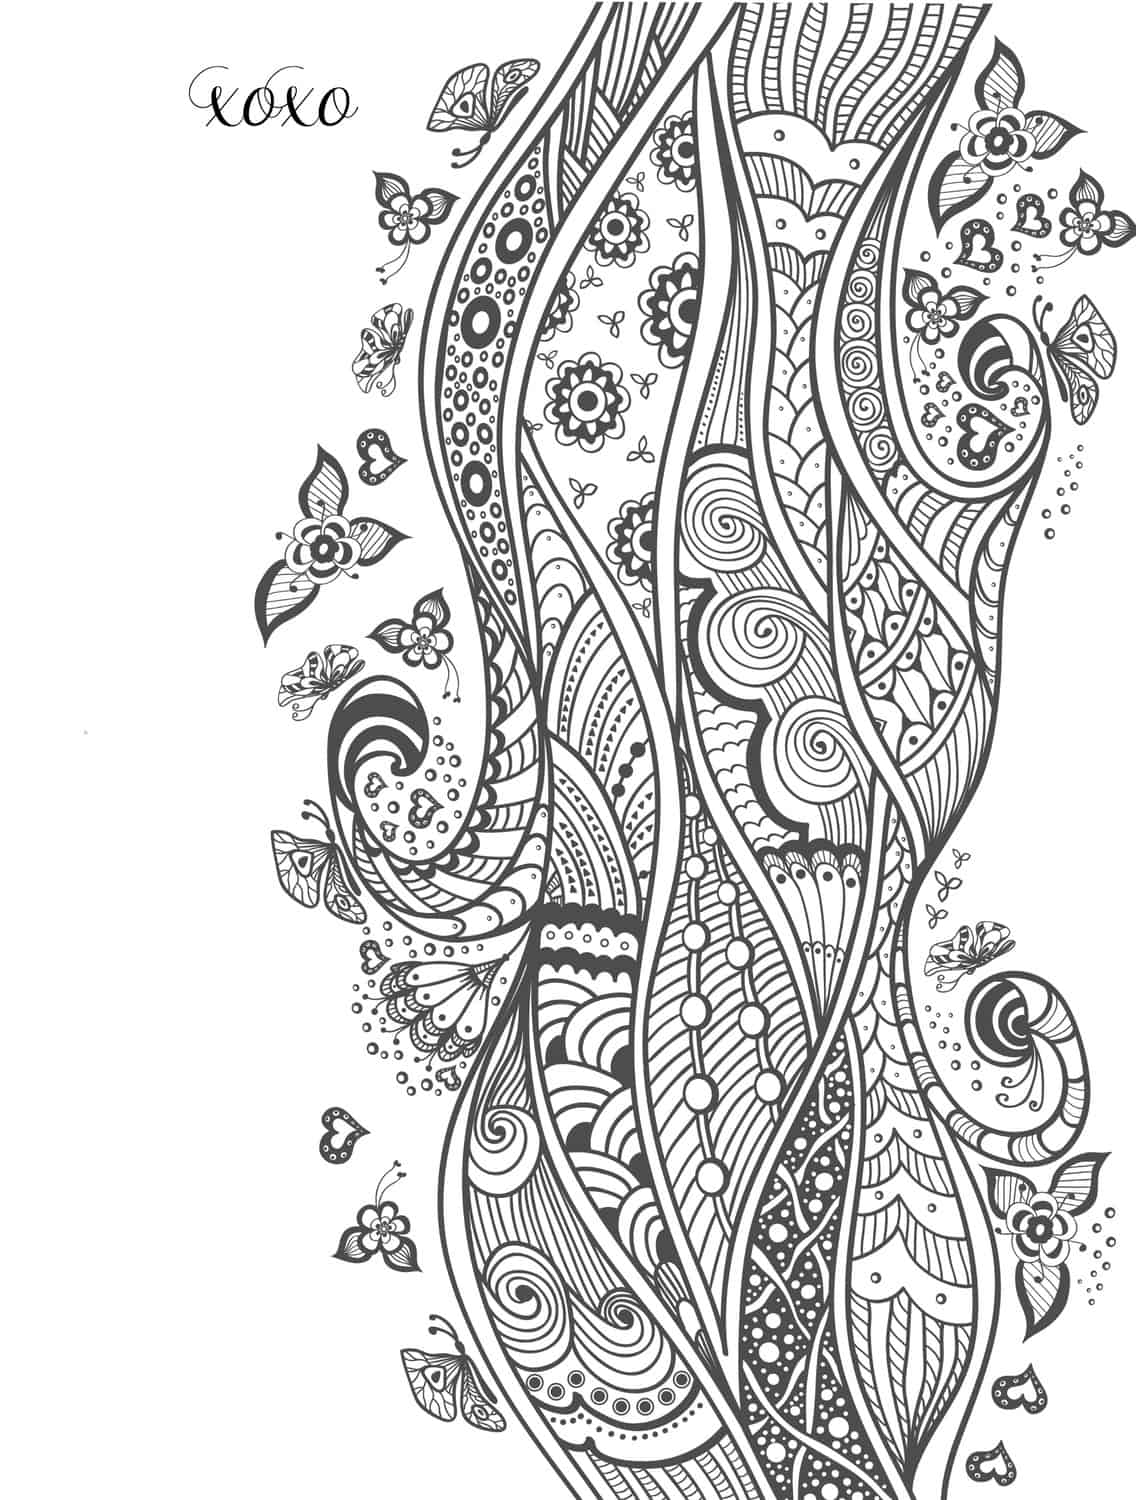 20 free printable valentines adult coloring pages - Free Download Coloring Pages